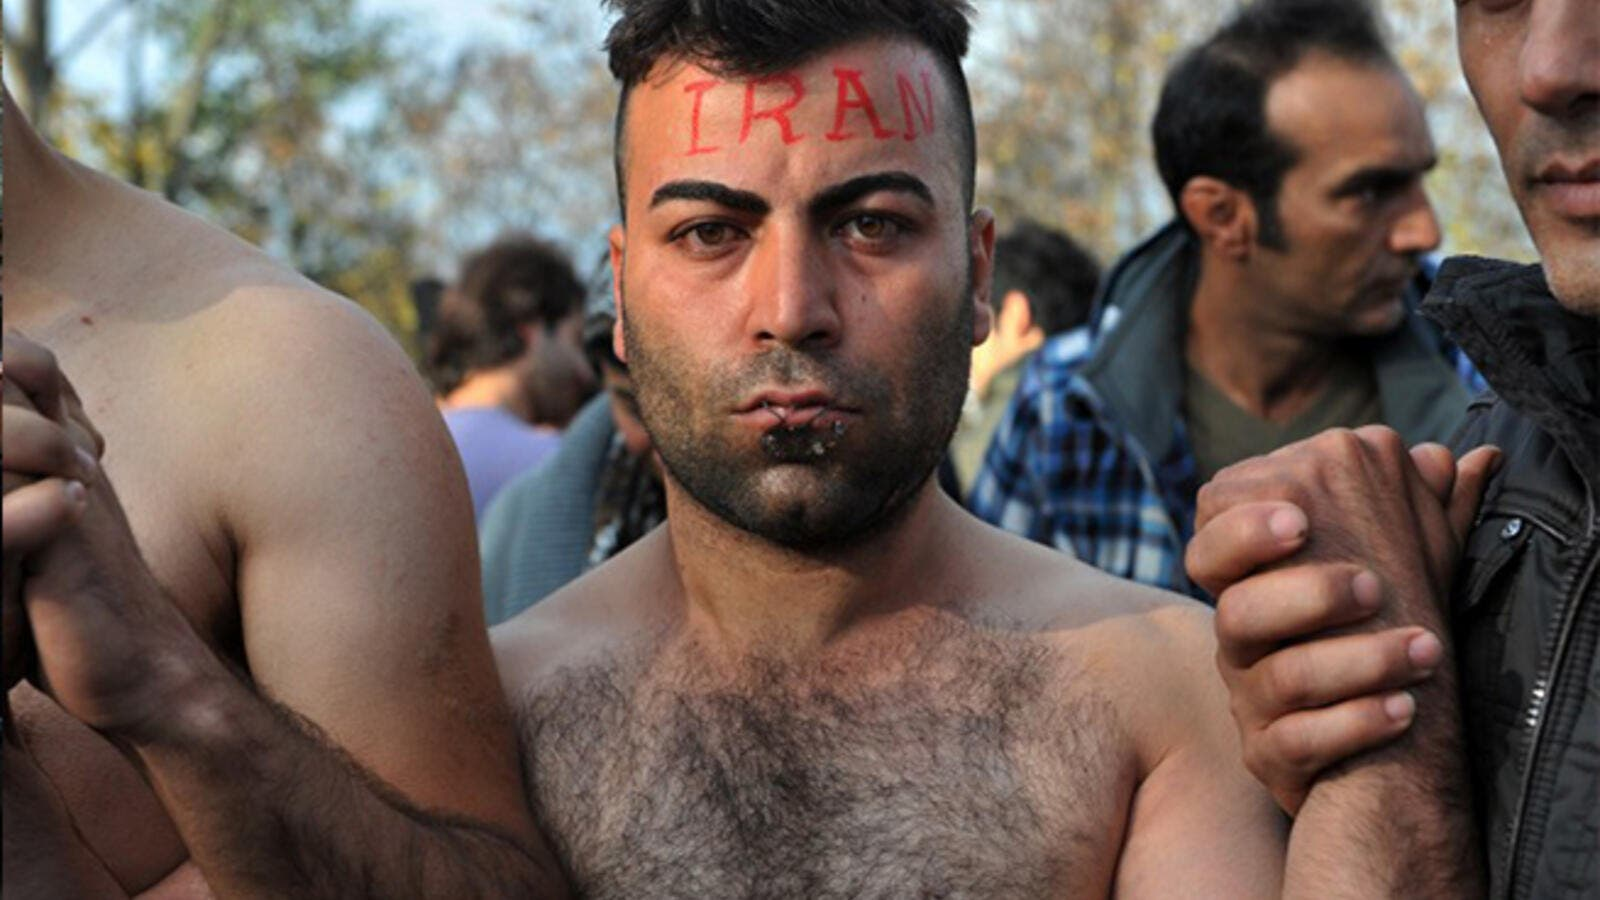 Scenes from inside the chaotic Macedonia-Greek border show Iranians and Kurds protesting their blocked entry—with needle and nylon. (AFP/File)